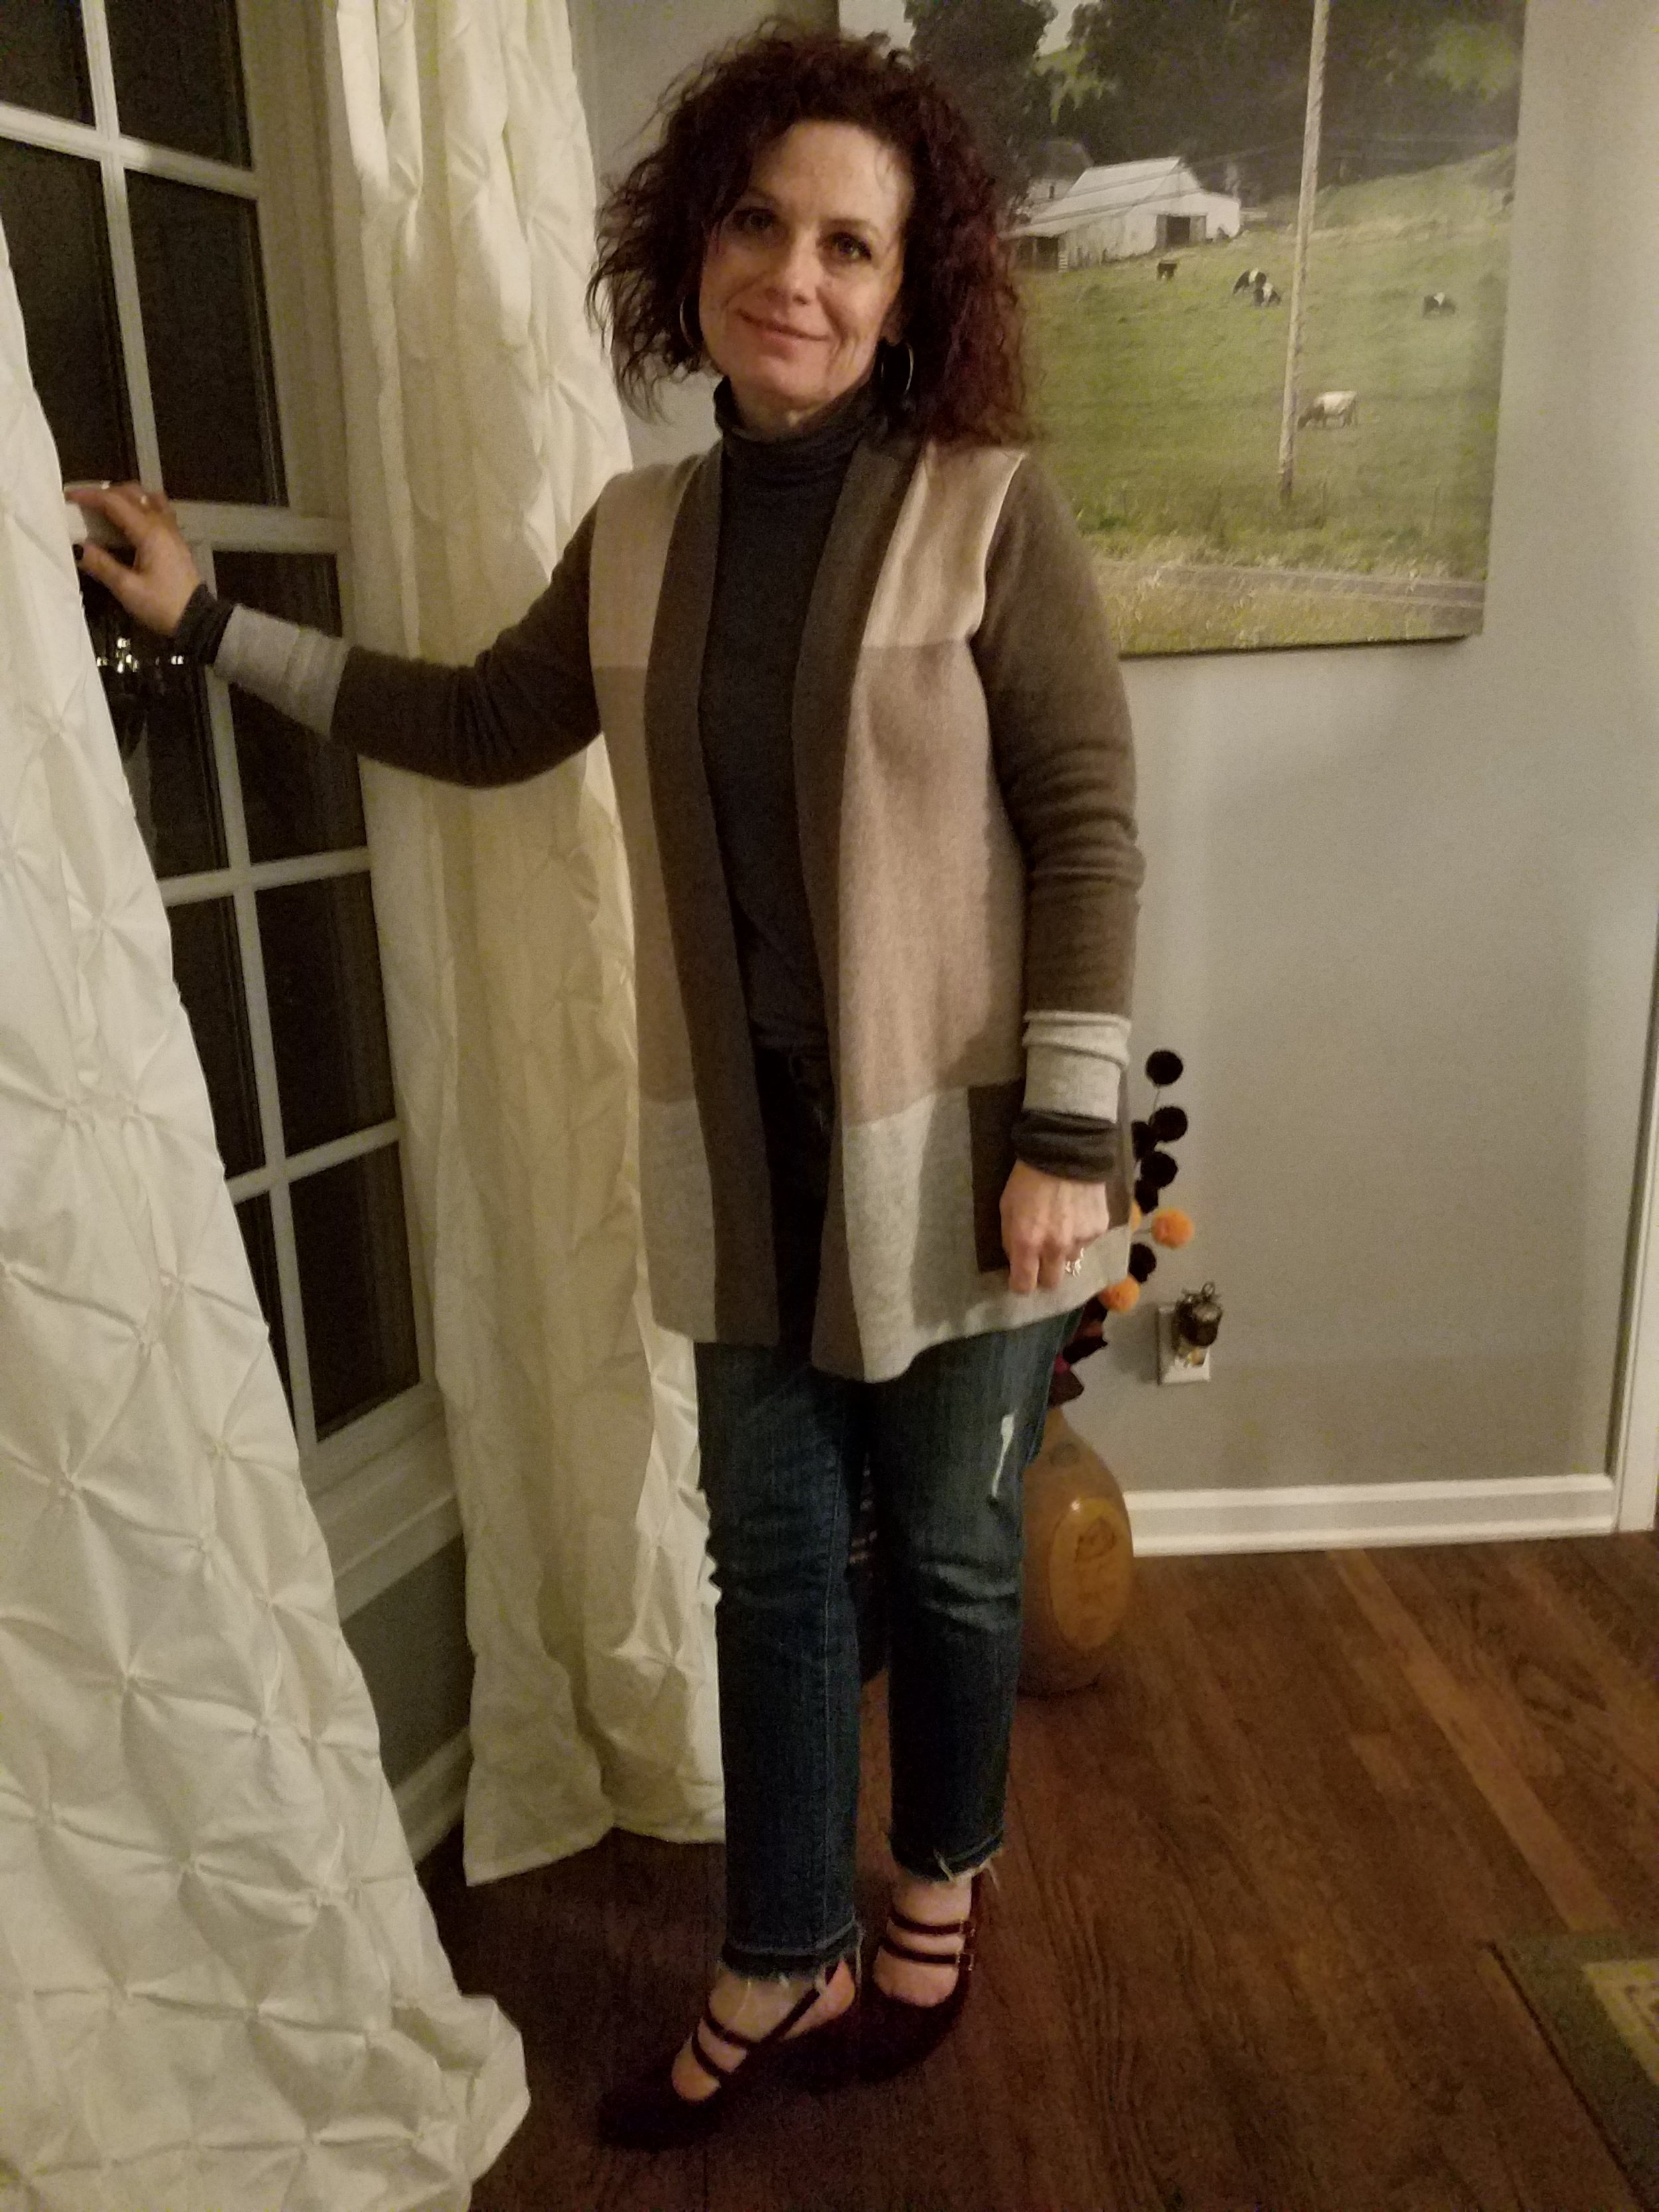 The sweater is a beautiful cashmere given to me for Christmas from the Mr., along with the shoes - both are new favs :)